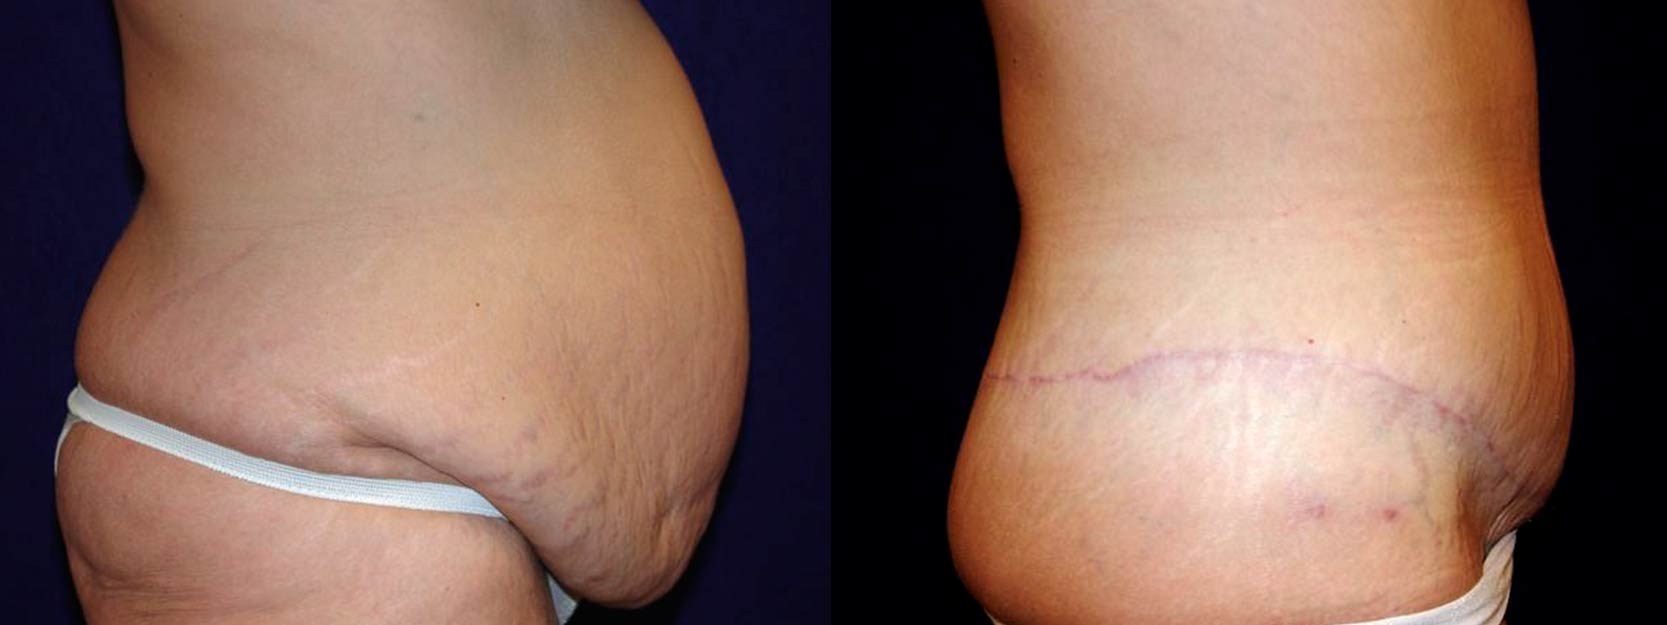 Right Profile View - Circumferential Tummy Tuck After Massive Weight Loss